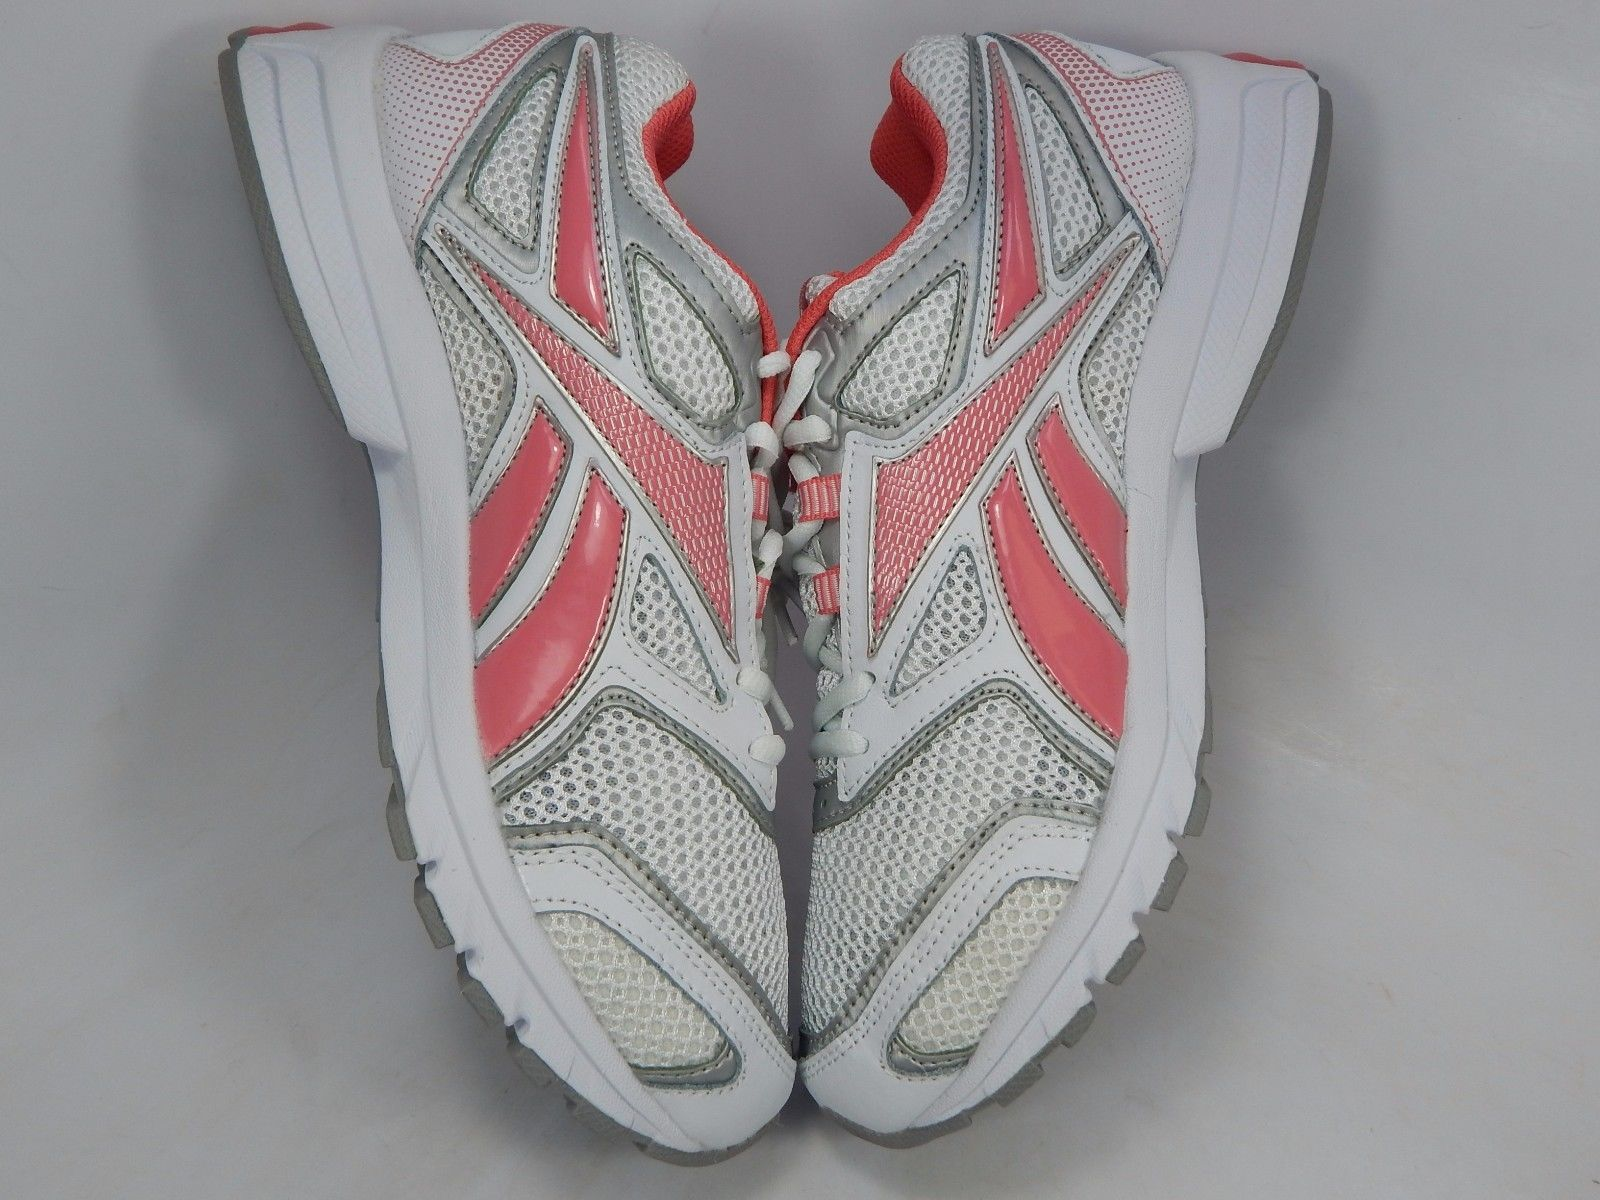 Reebok Southrange Run L Women's Running Shoes Size US 10 M (B) EU 41 White Pink